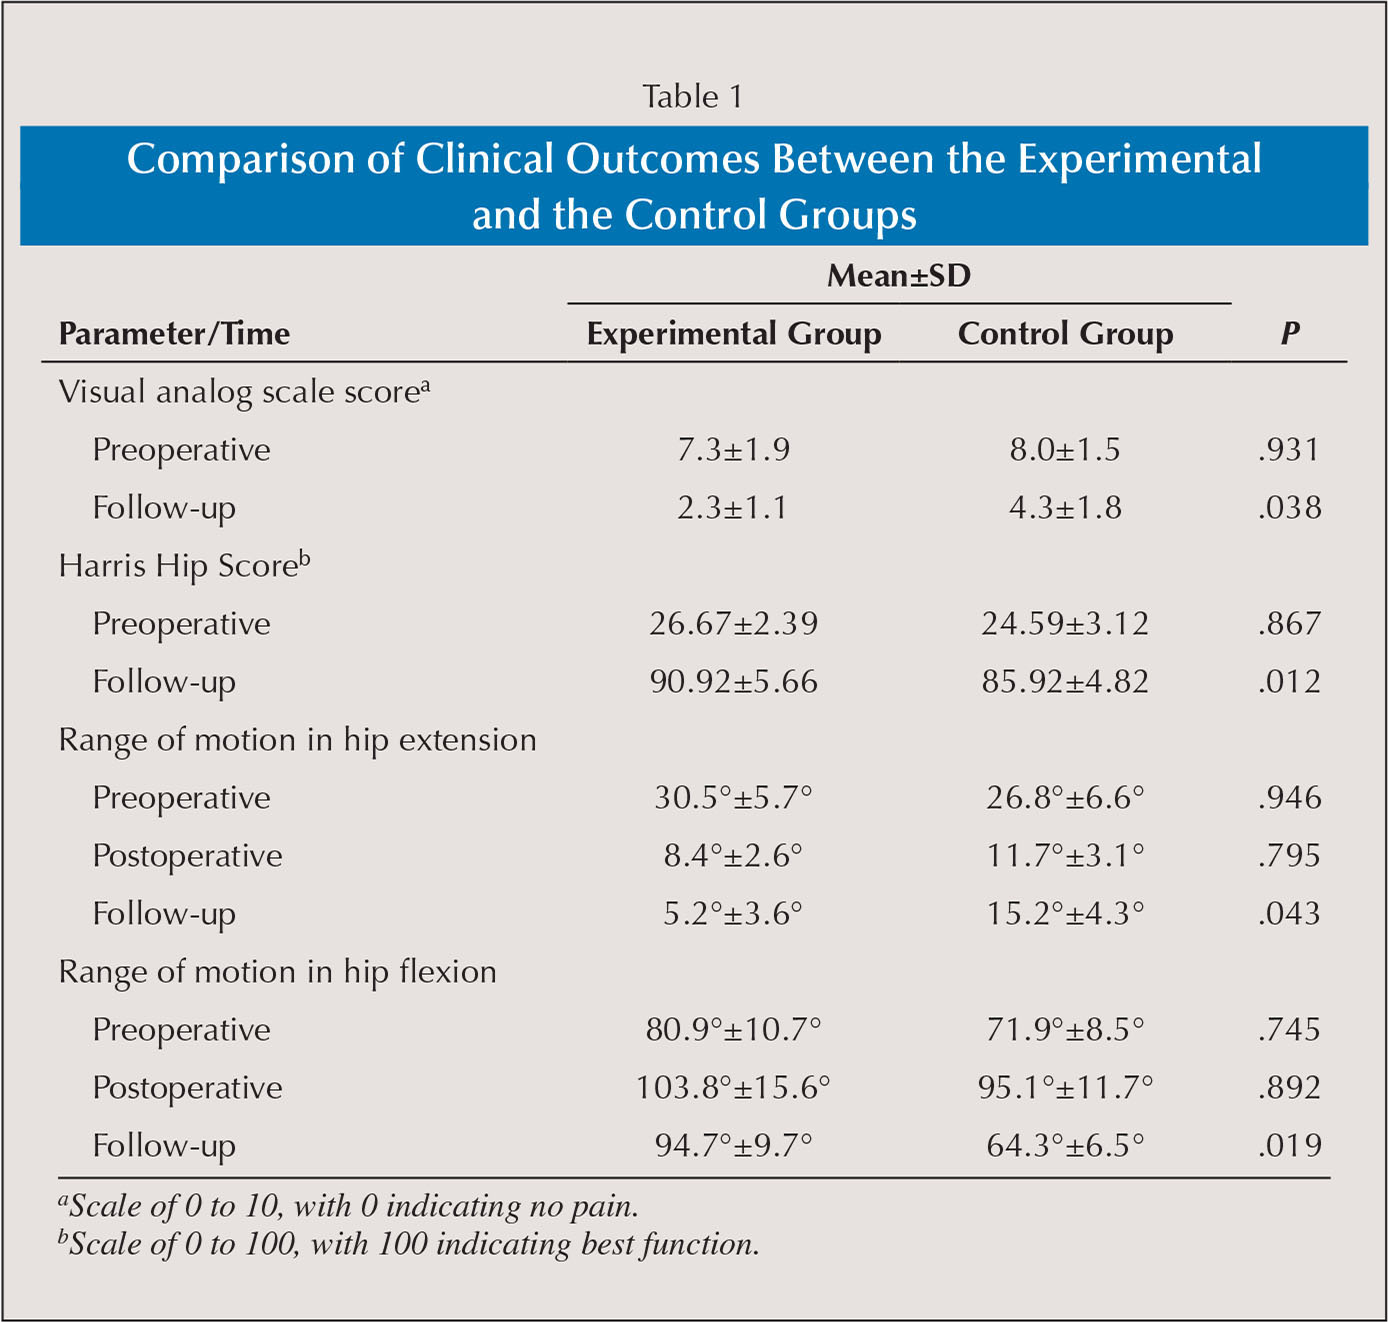 Comparison of Clinical Outcomes Between the Experimental and the Control Groups